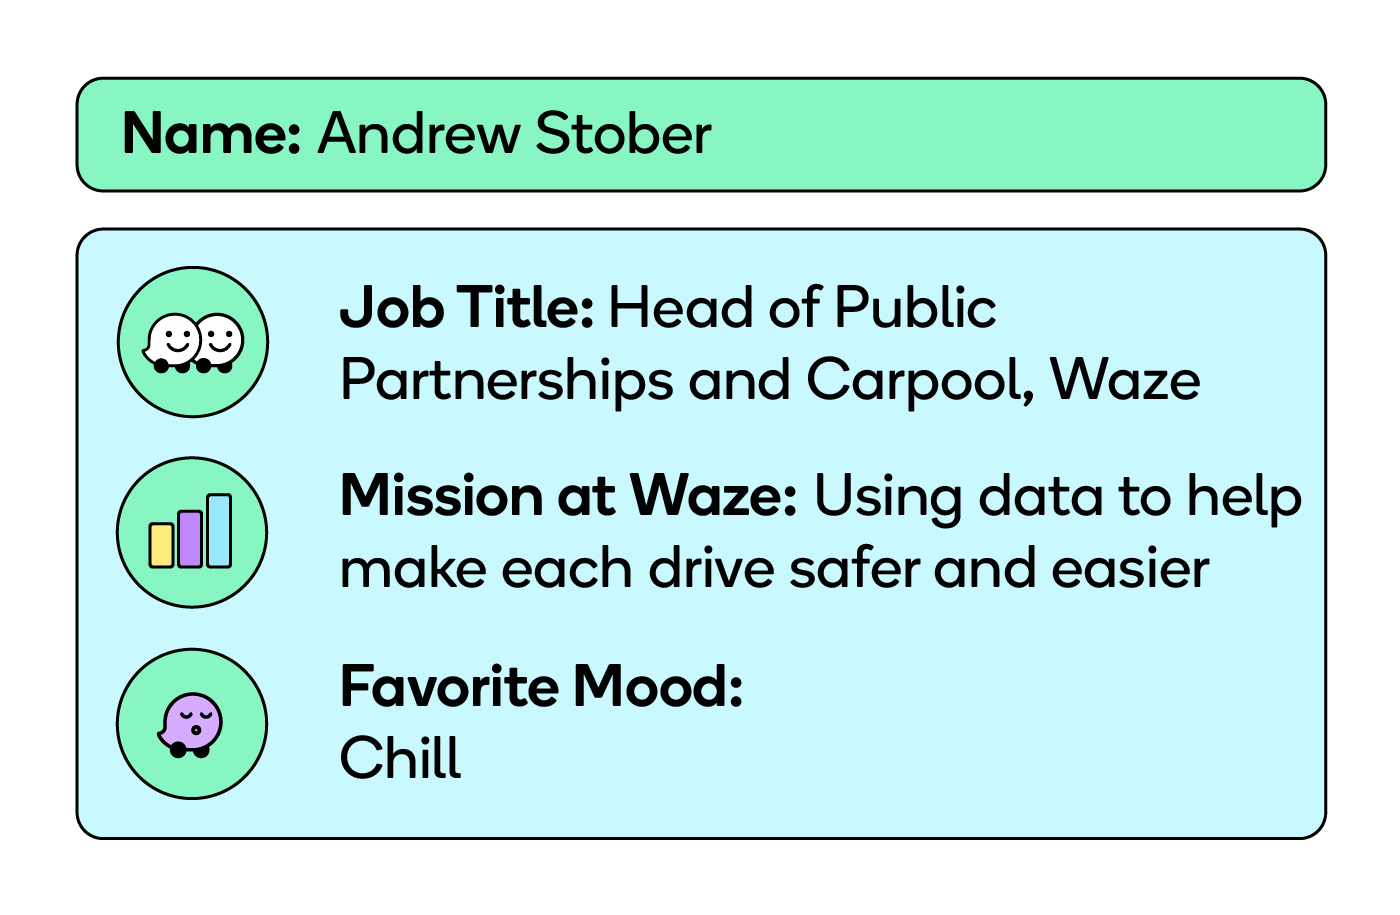 Waze's Head of Public Partnerships and Carpool Andrew Stober uses data to make drives safe and easy.